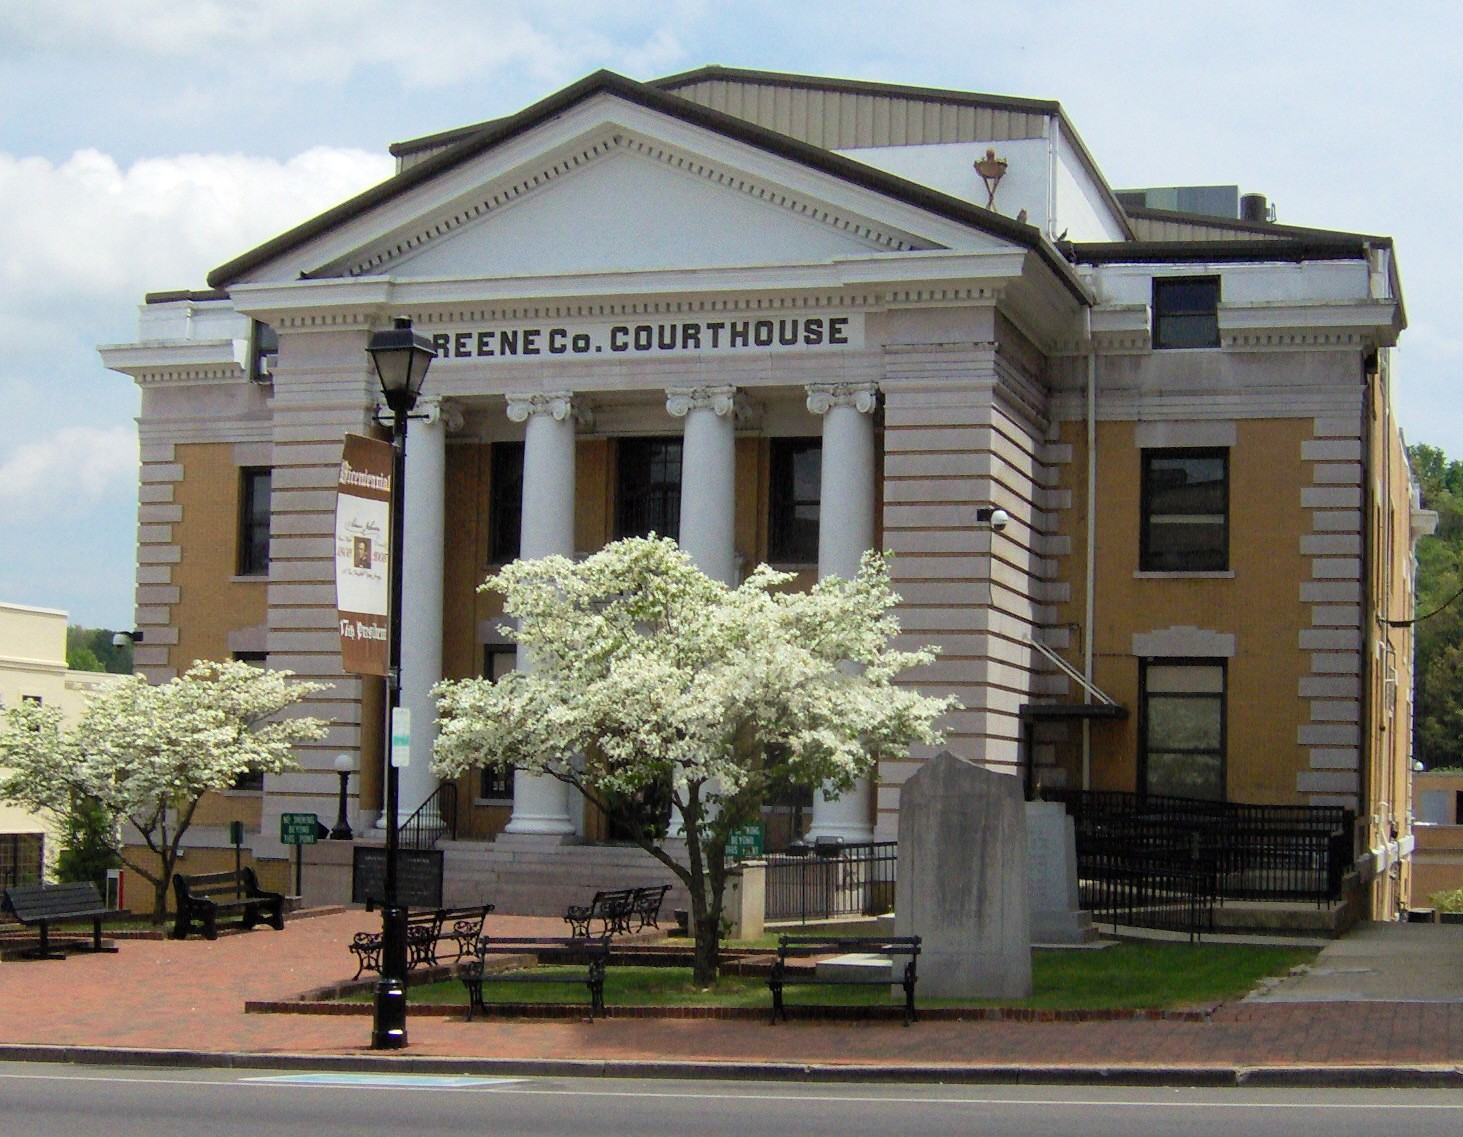 Greene-county-courthouse-tn1